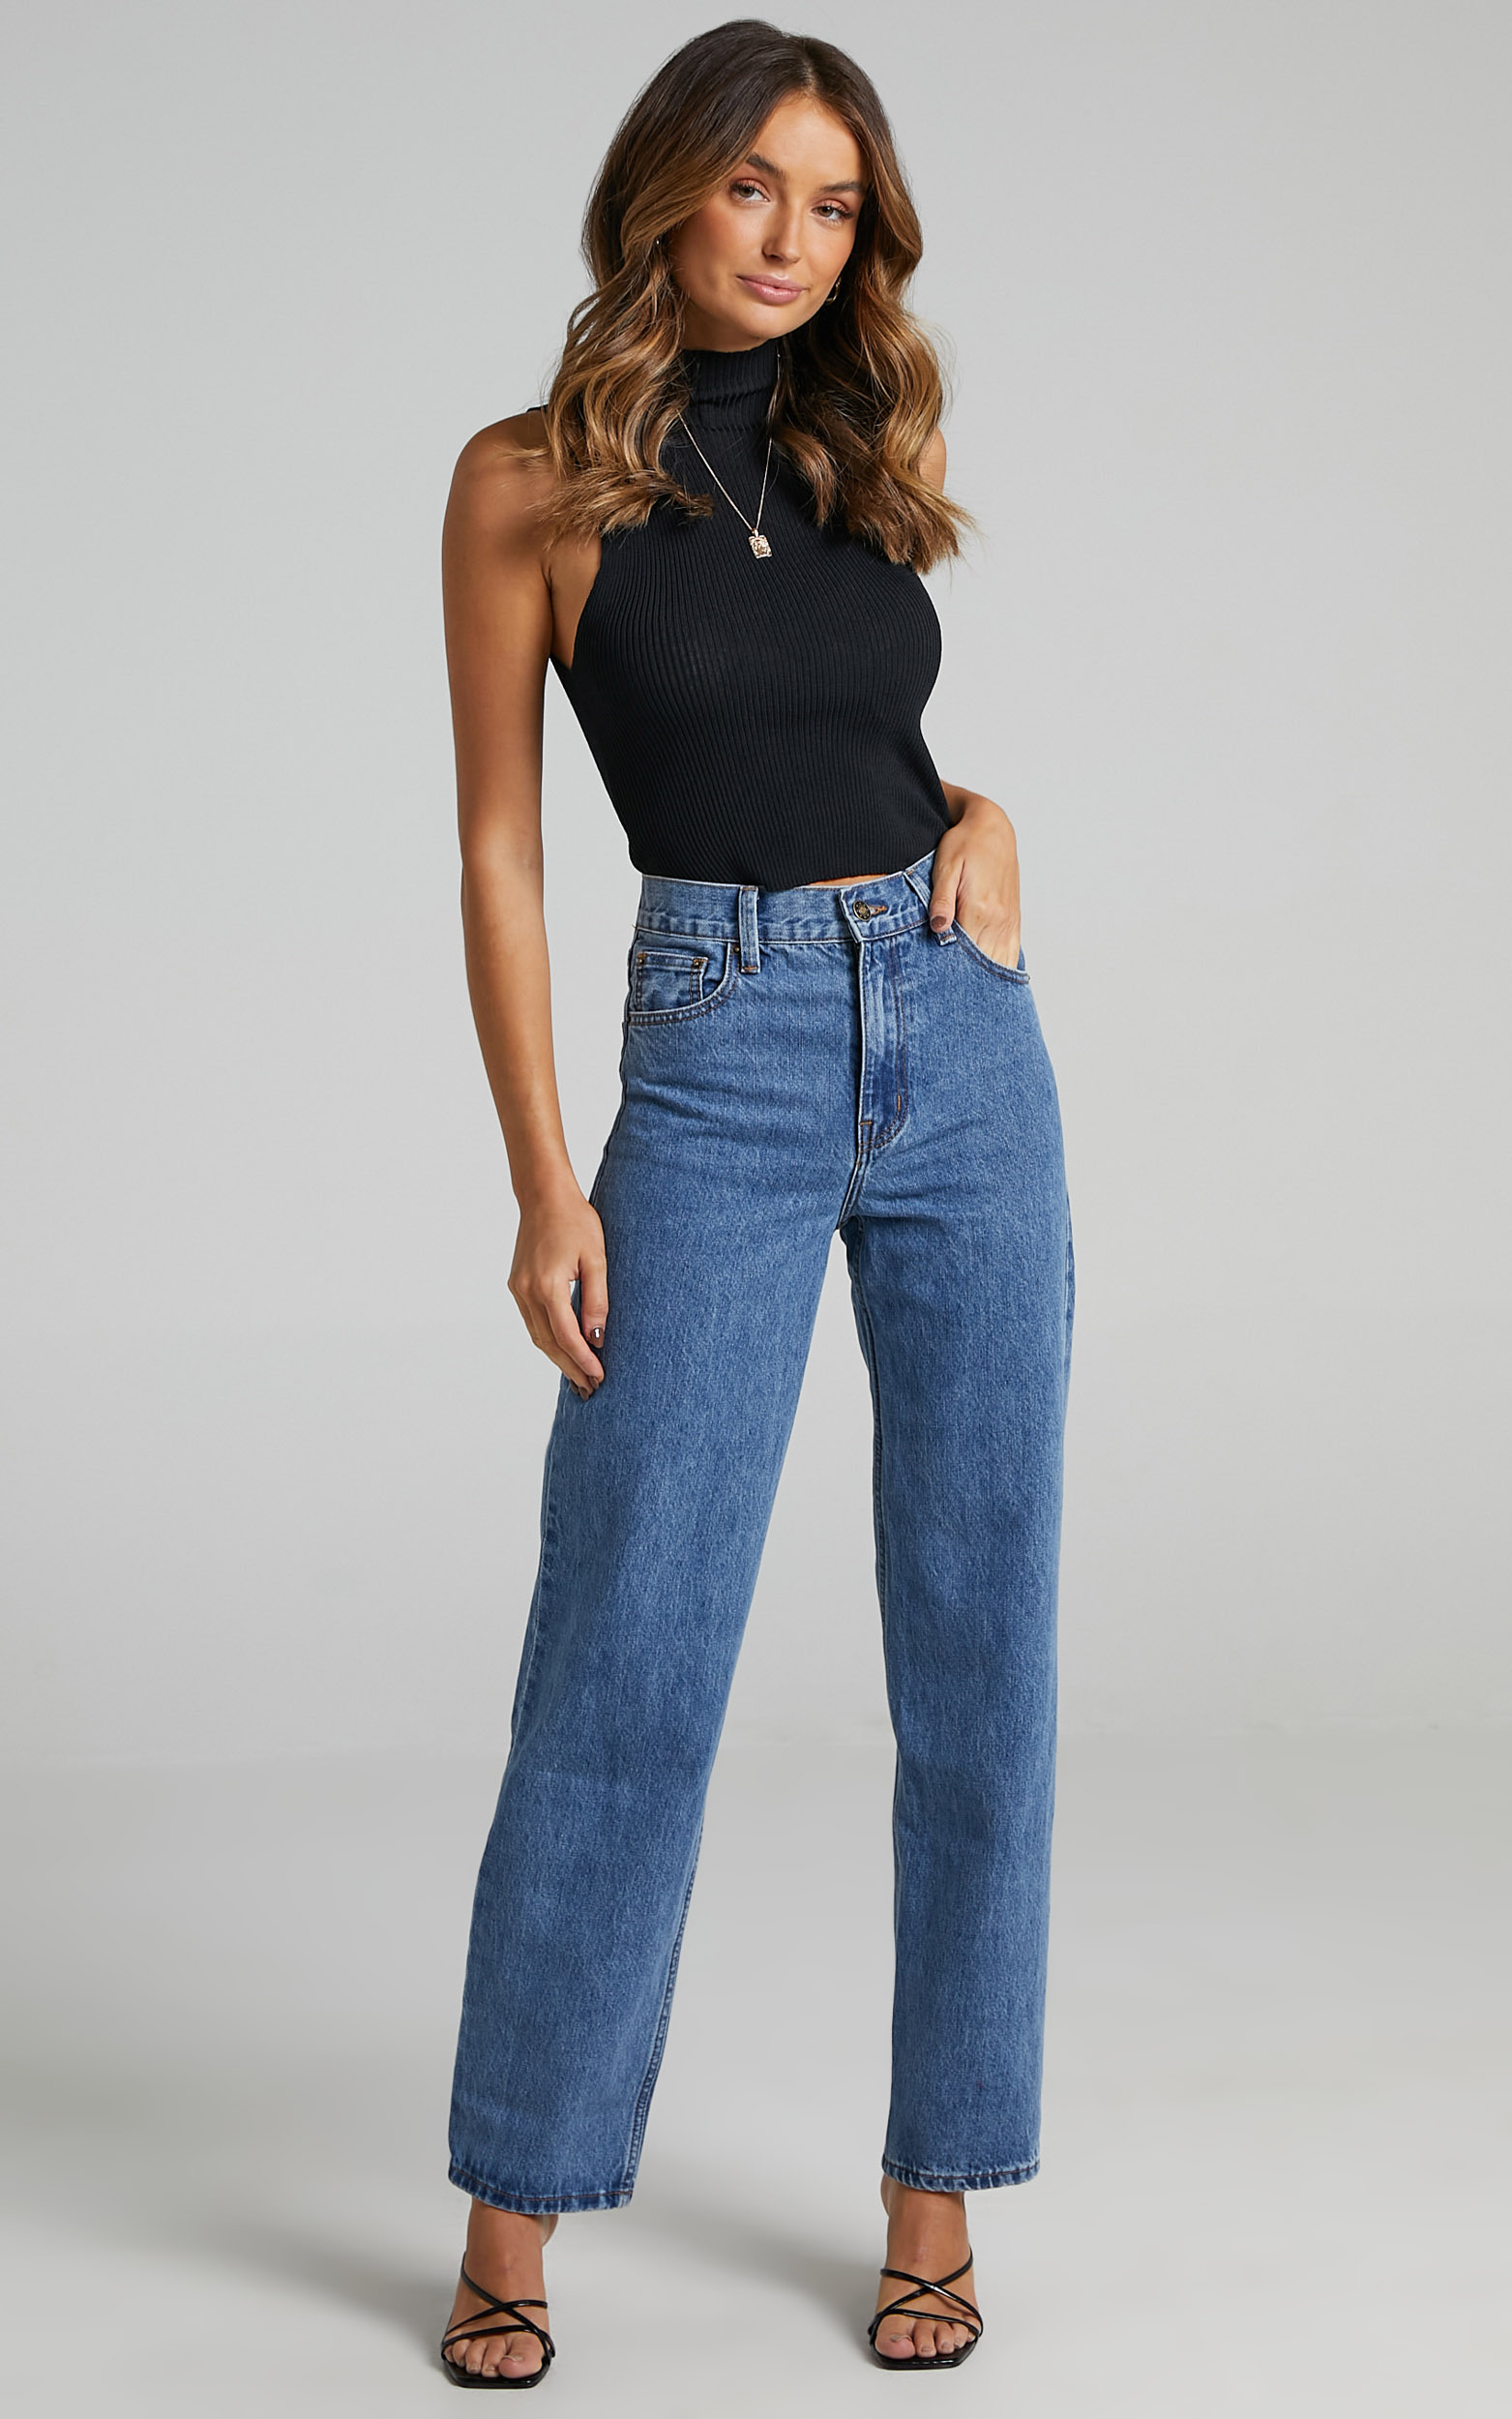 Lioness - Old Faithful Jean in Blue Denim - 4 (XXS), Blue, hi-res image number null